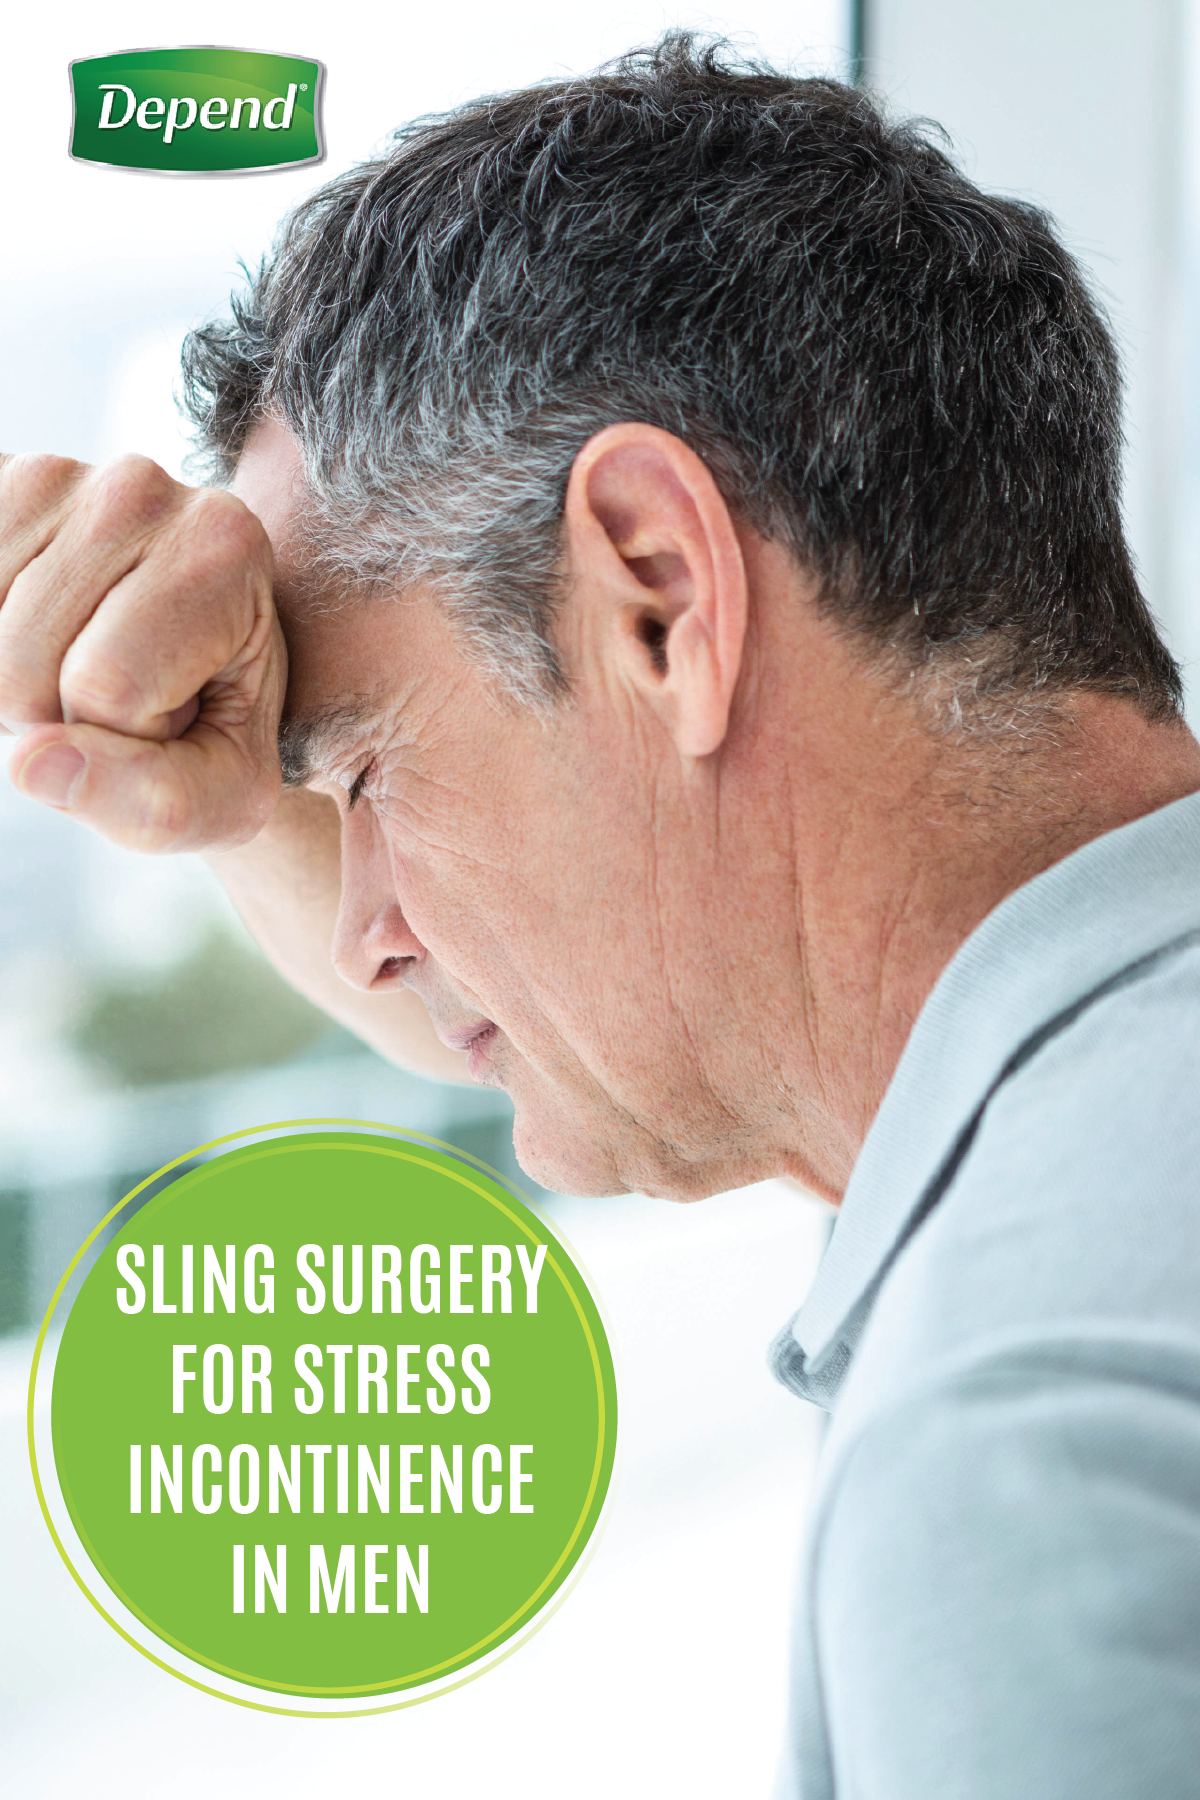 If you experience a bladder leak when you cough, sneeze, or even exercise you may be suffering from a common condition called Stress Urinary Incontinence. See how men suffering from SUI can benefit from sling surgery with this helpful advice from Depend®. When you've got the right information and the protection of Depend® Real Fit® Briefs on your side, you can get back to the active life you've been missing!